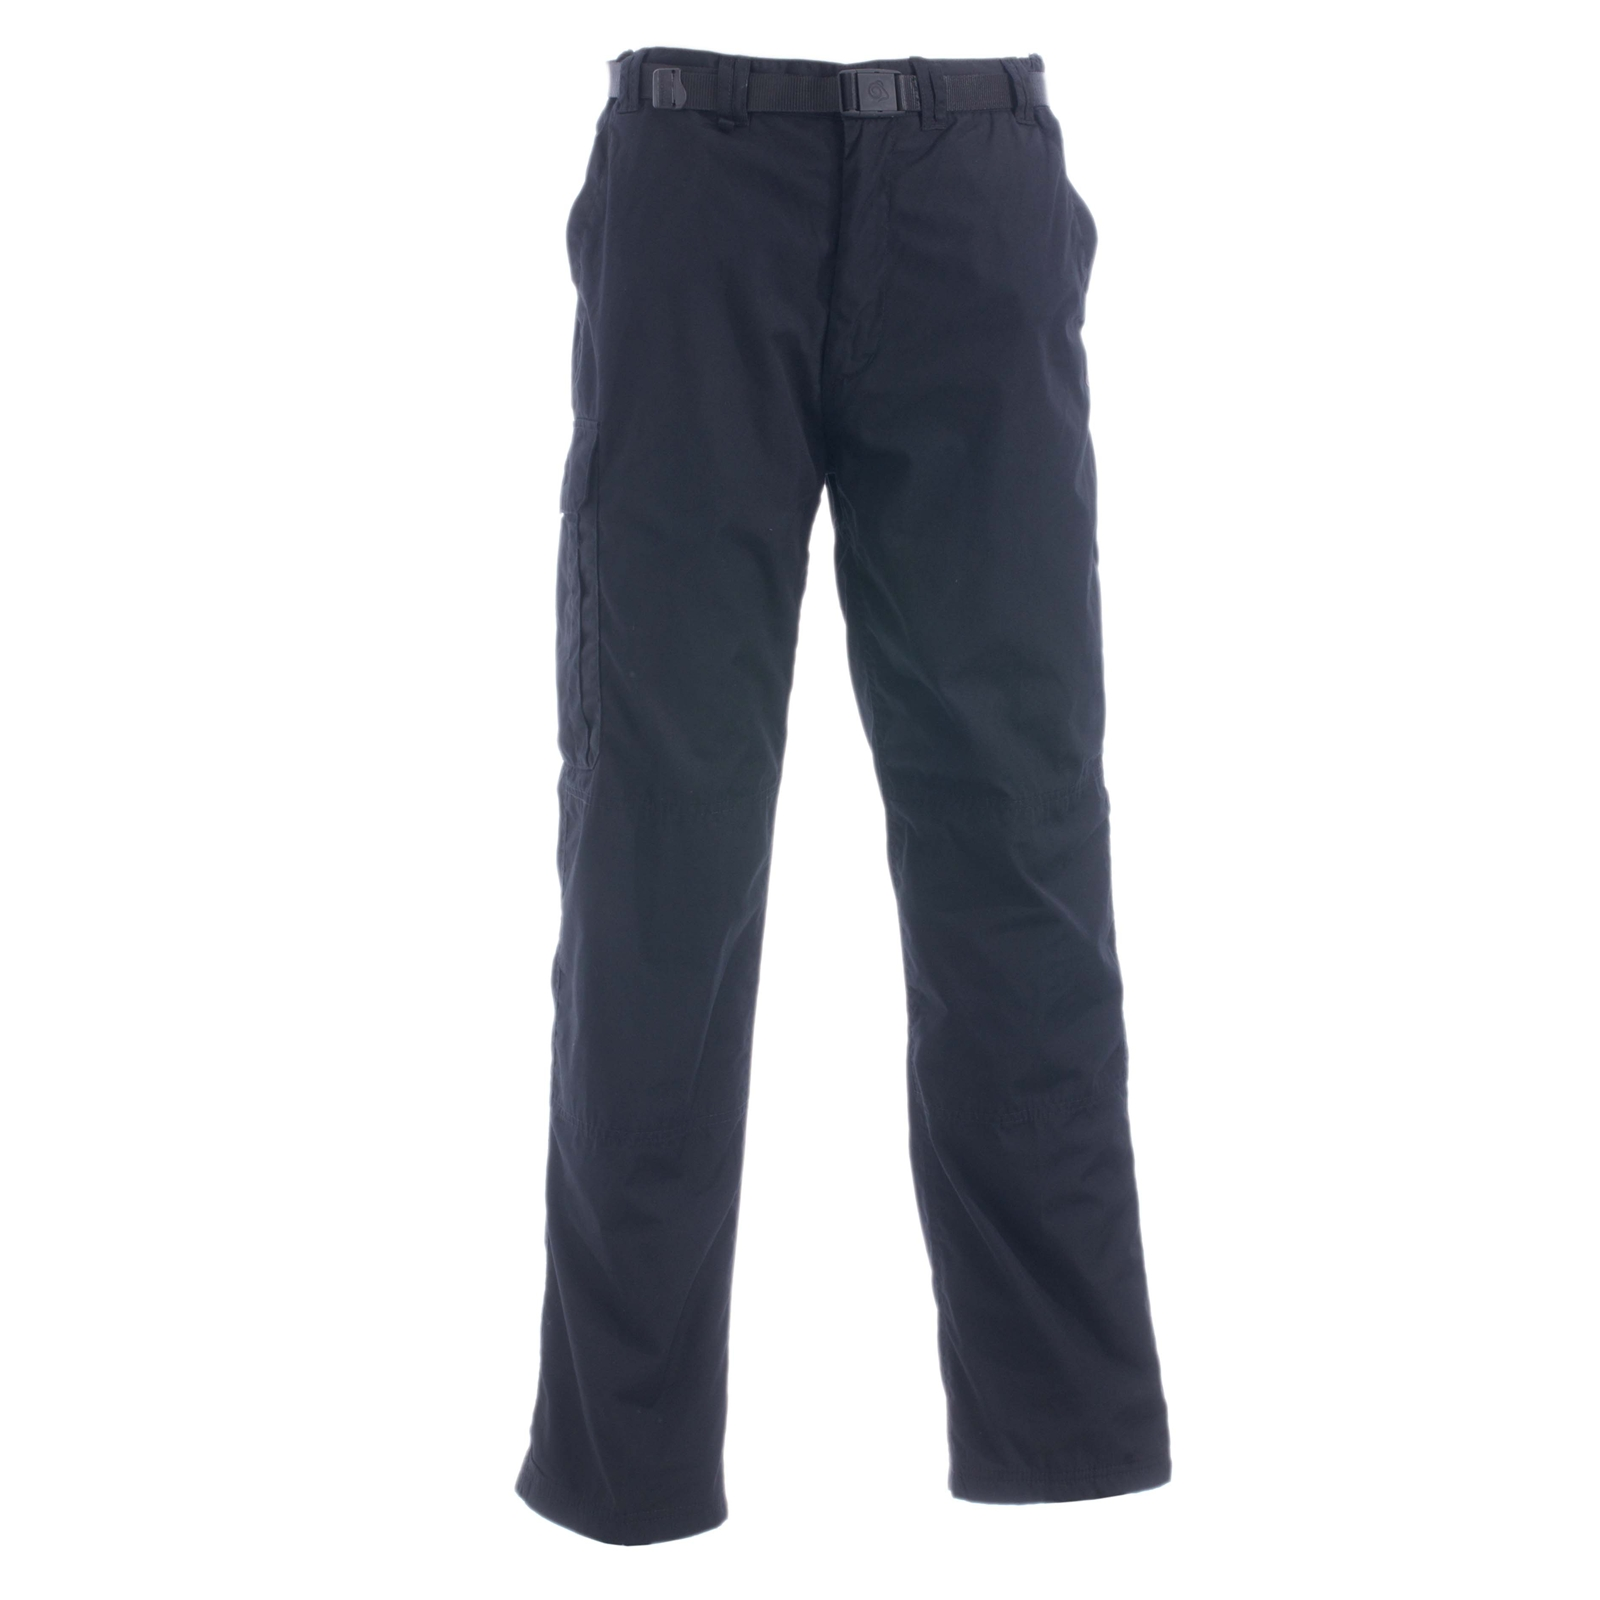 winter trousers for men